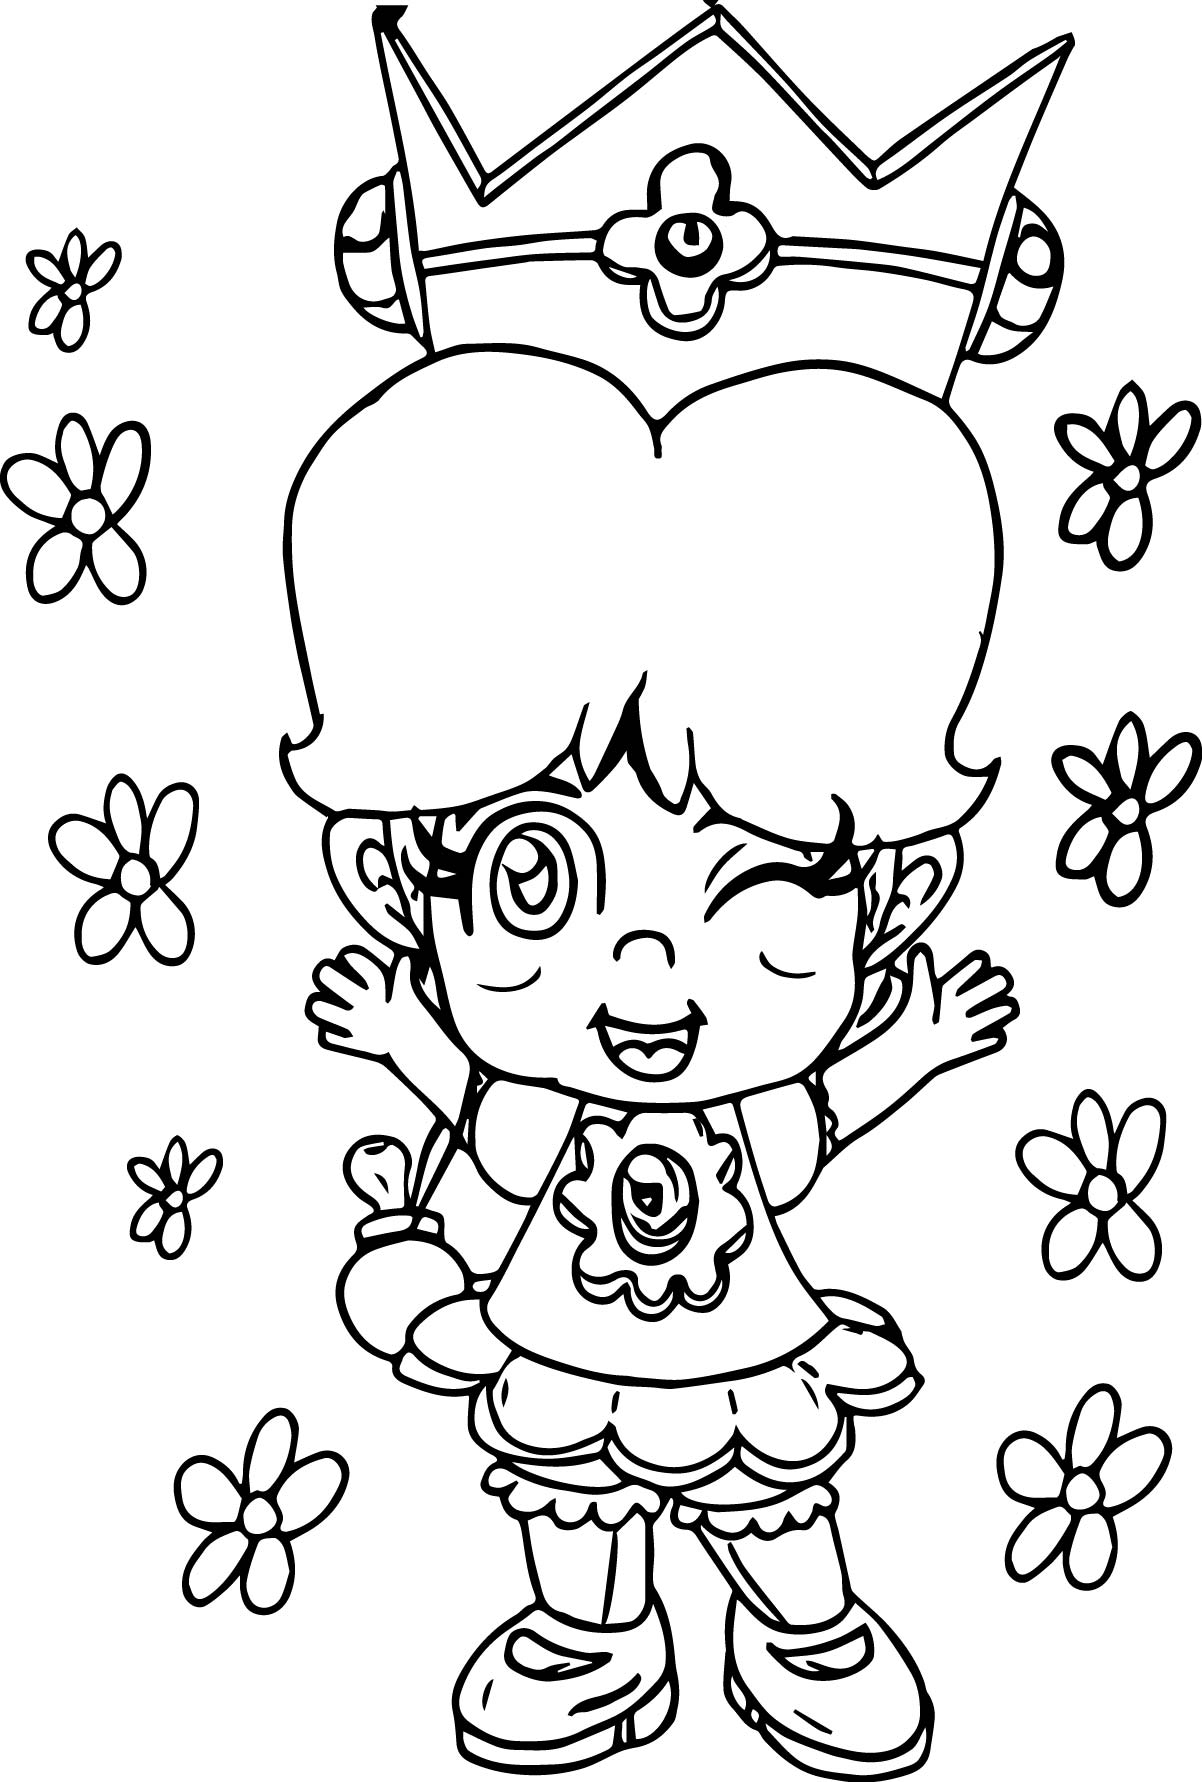 daisy coloring pages to print - baby daisy flower coloring page